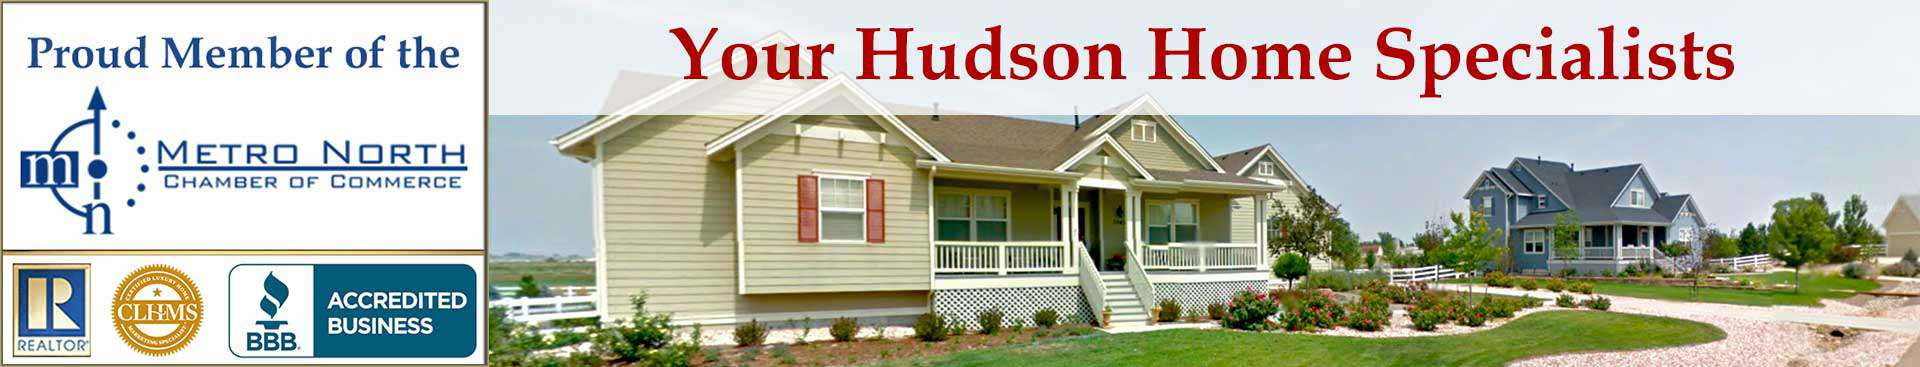 Hudson CO Accreditations Banner